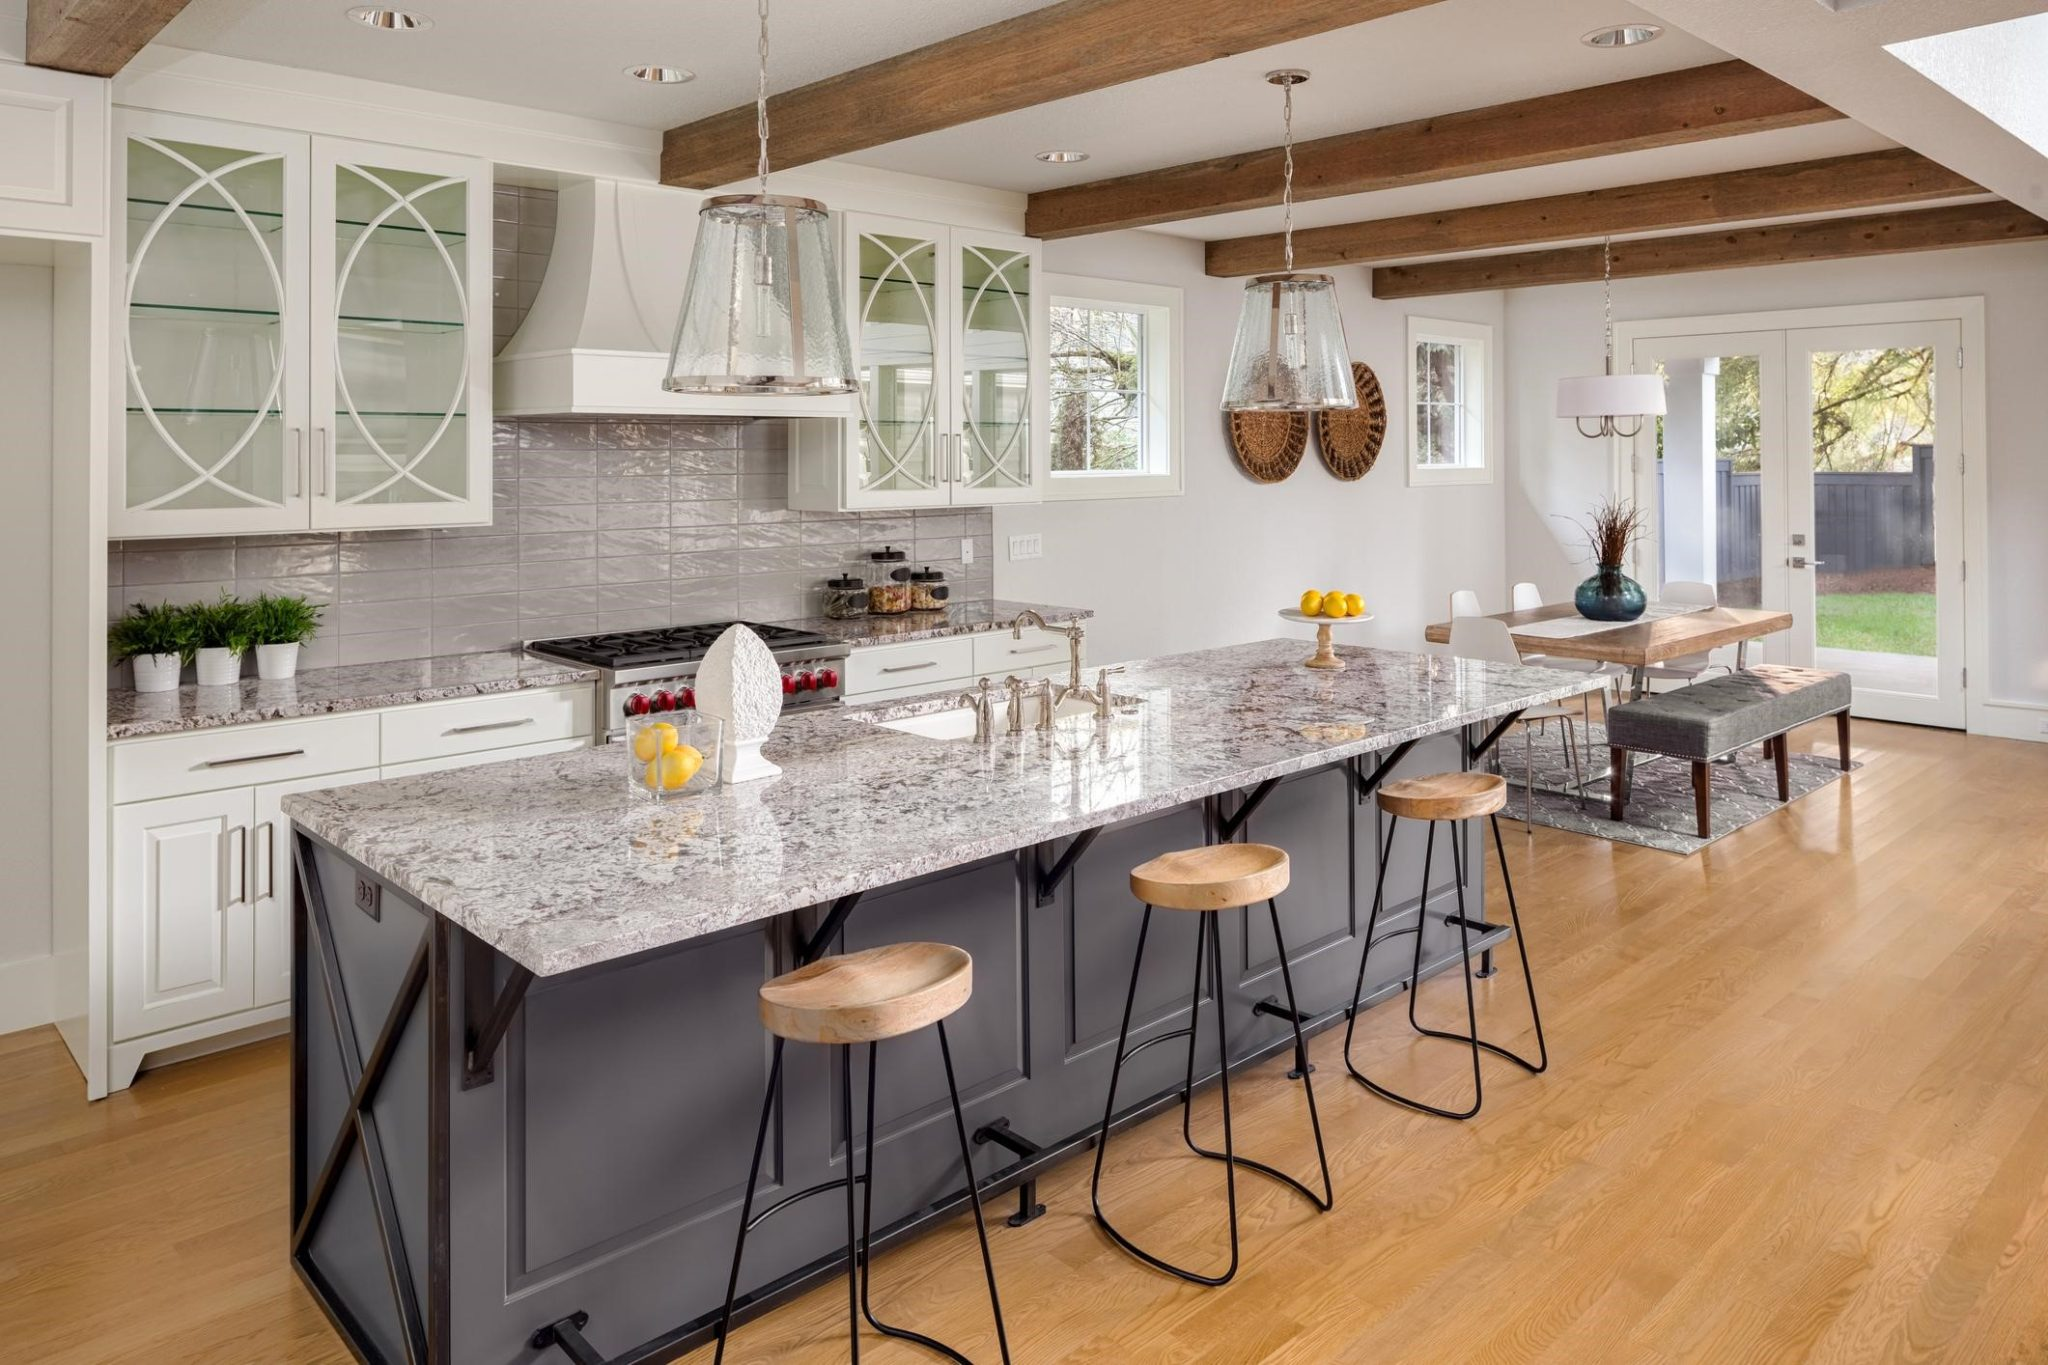 7 Remodeling Trends For 2020 To Steal Right Now Perryman